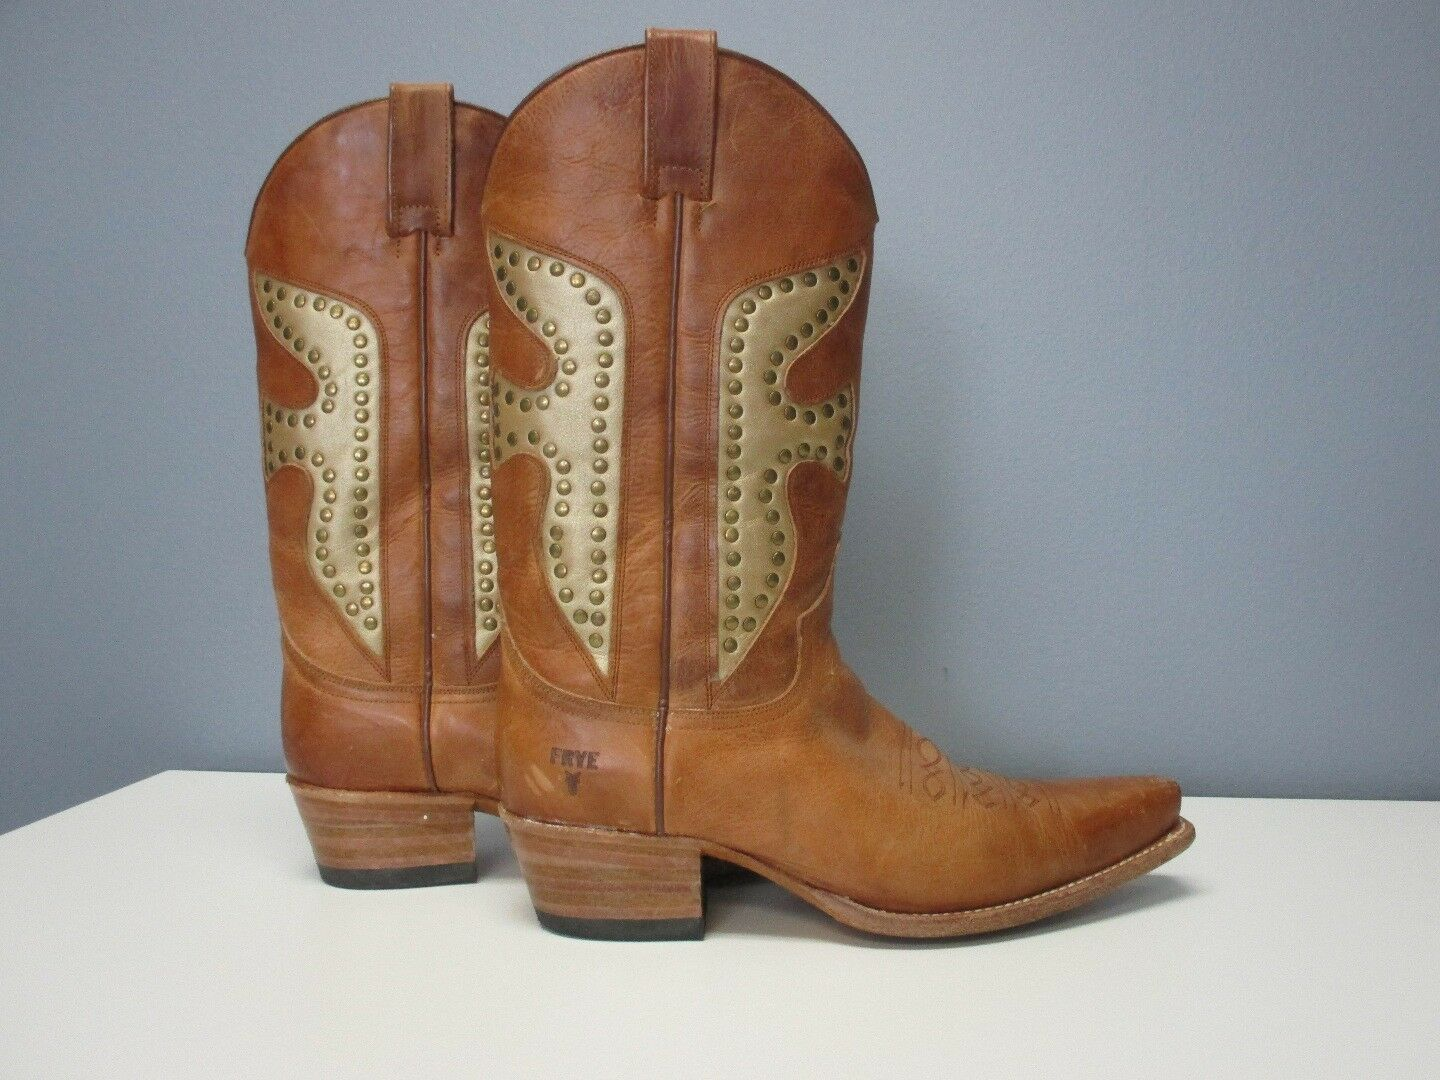 FRYE Light Brown Leather Studded Mid Calf Casual Cowboy Boots Sz 8 M Bin 4399